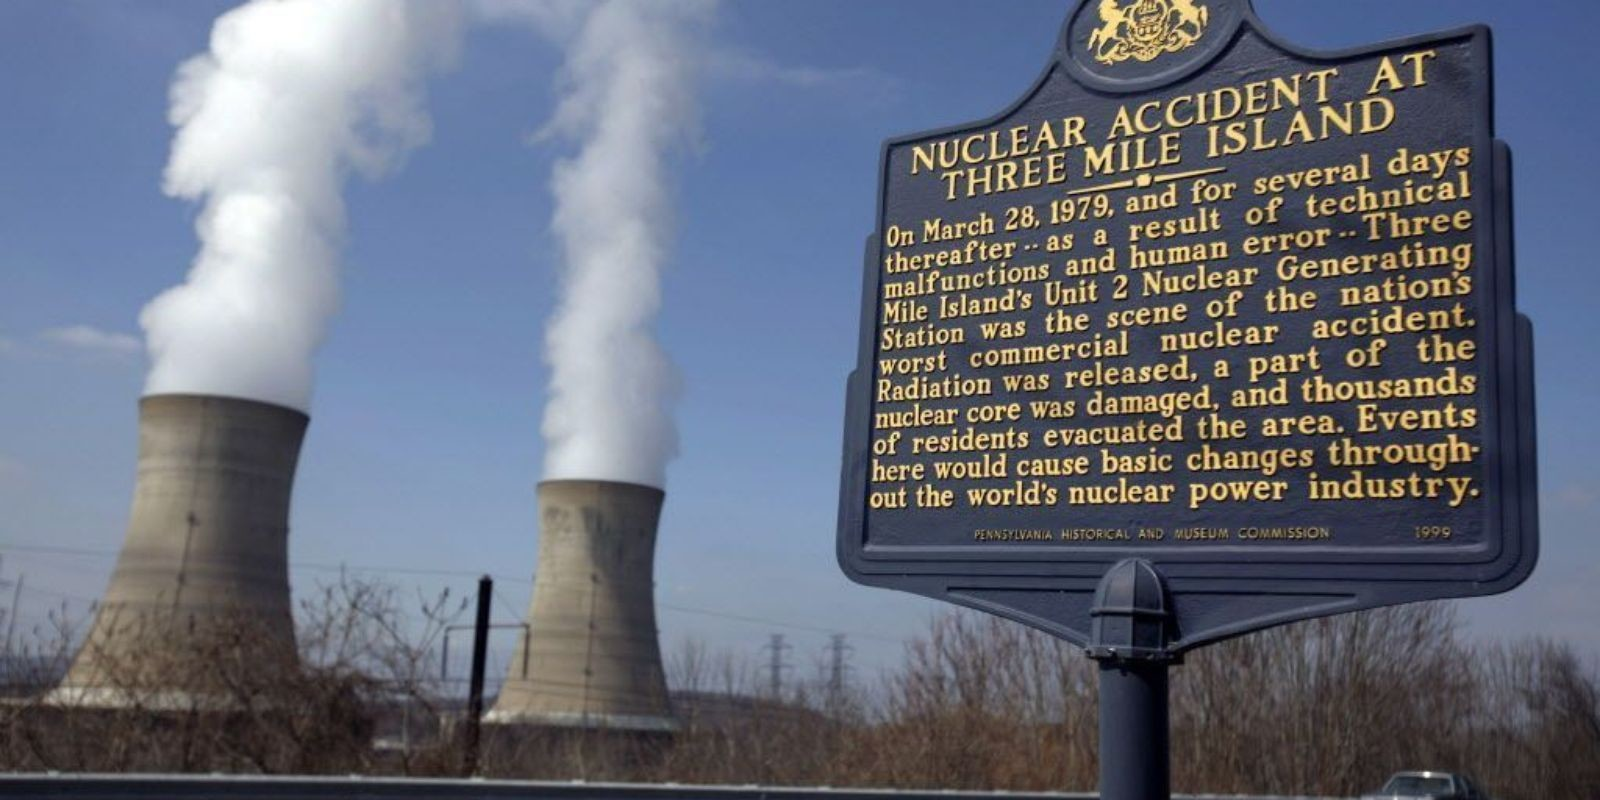 nuclear-accident-at-three-mile-island